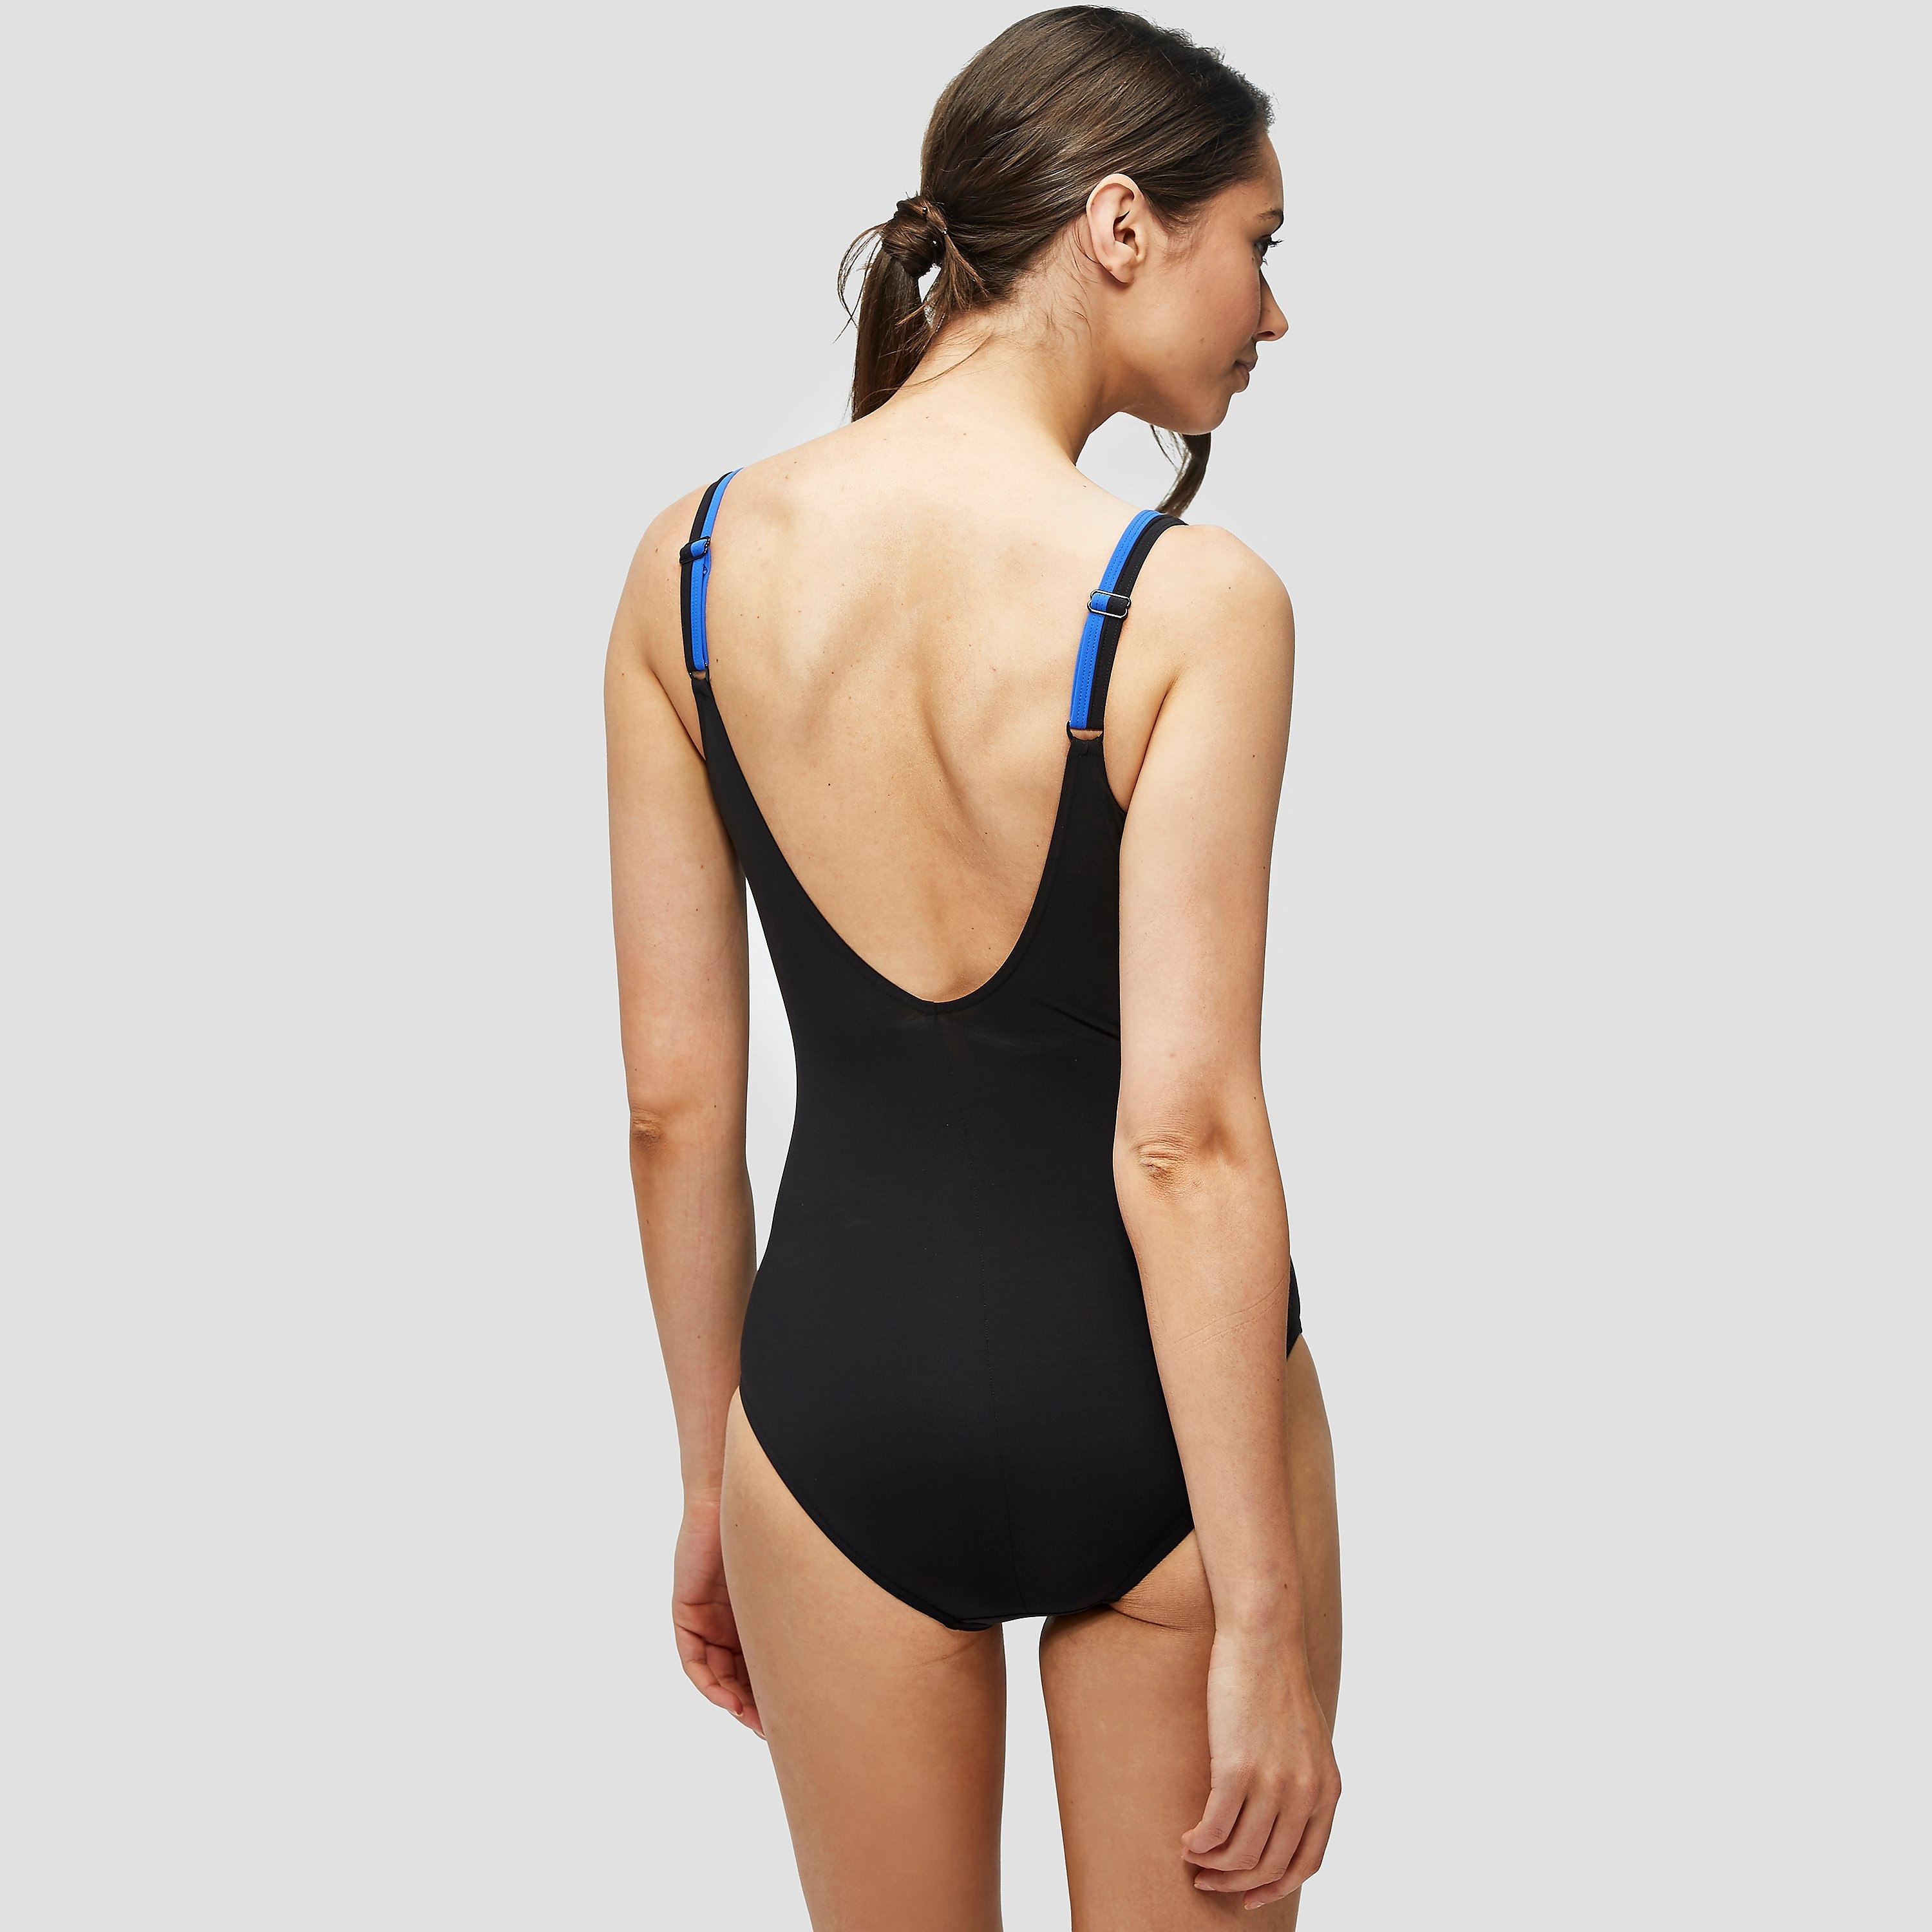 Speedo Ladies Speedosculpture Contourluxe 1 Piece